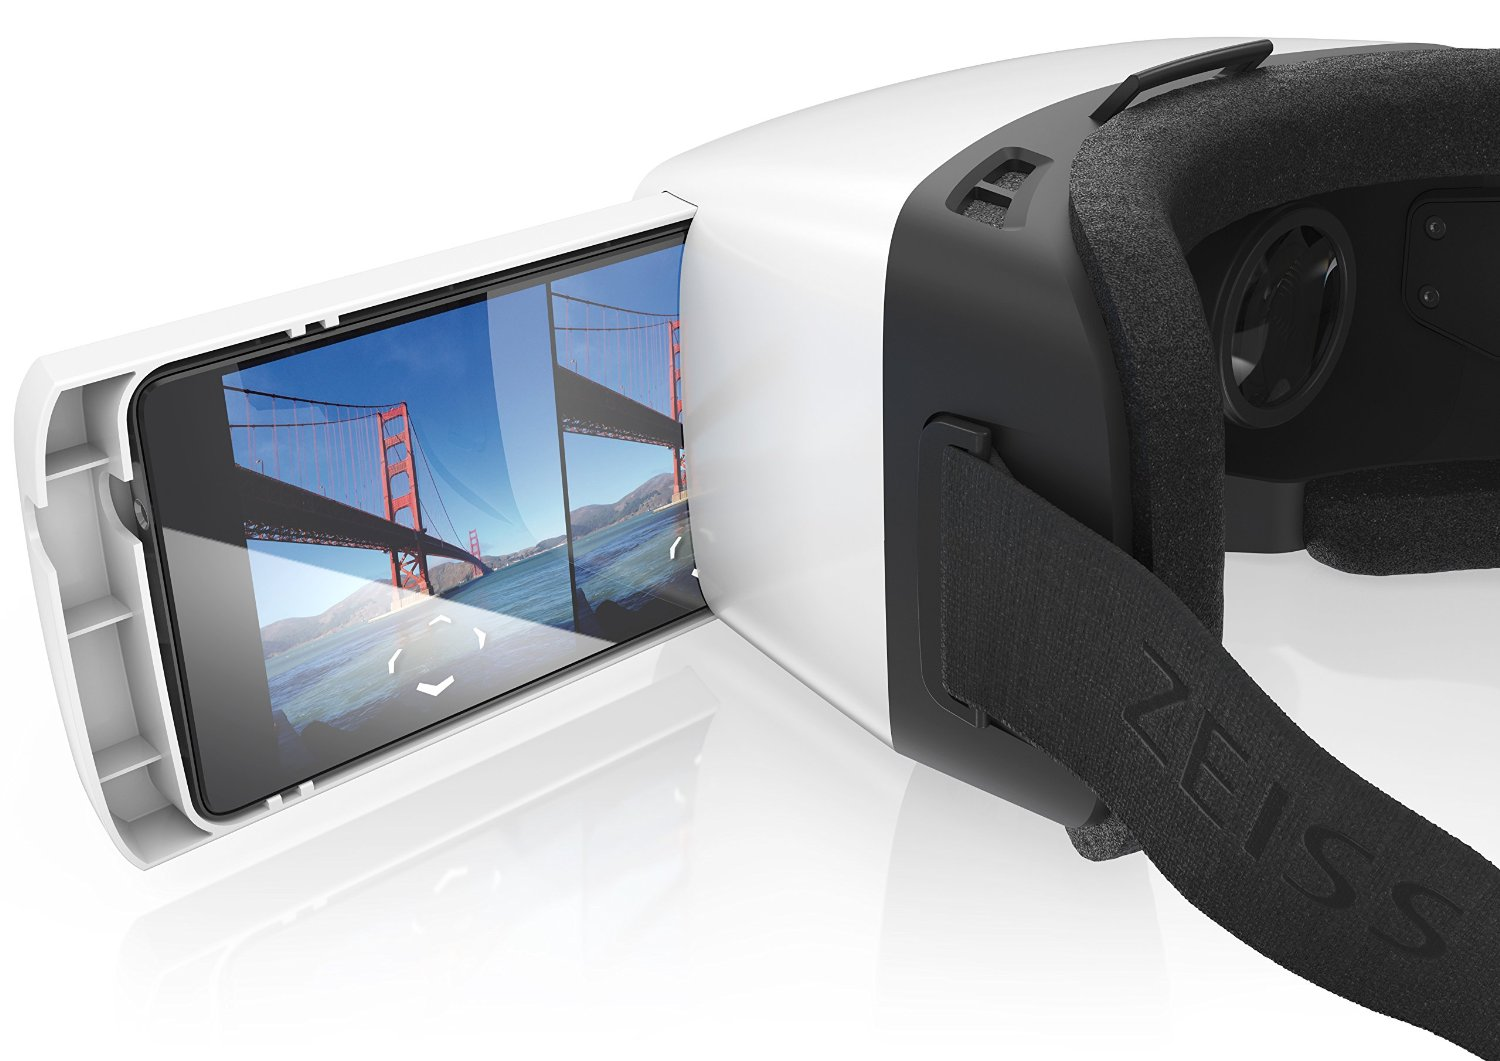 Zeiss Vr One Virtual Reality Headset For Iphone 6 Phone Tray Included Expert Drones